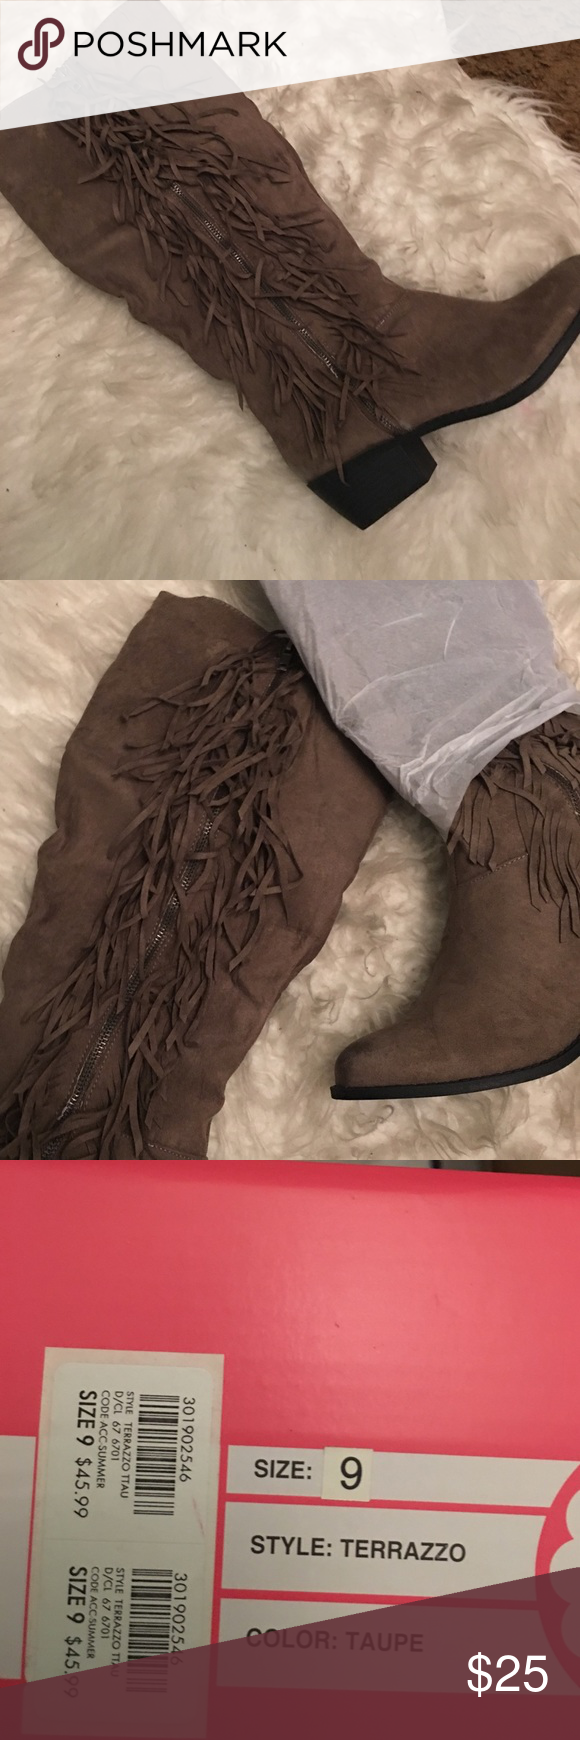 ⚡️FLASH SALE⚡️ NIB boots with fringe detail Cute boots that can pair up with any outfit. I have too many pairs, so I forgot I had them 🙈 Charlotte Russe Shoes